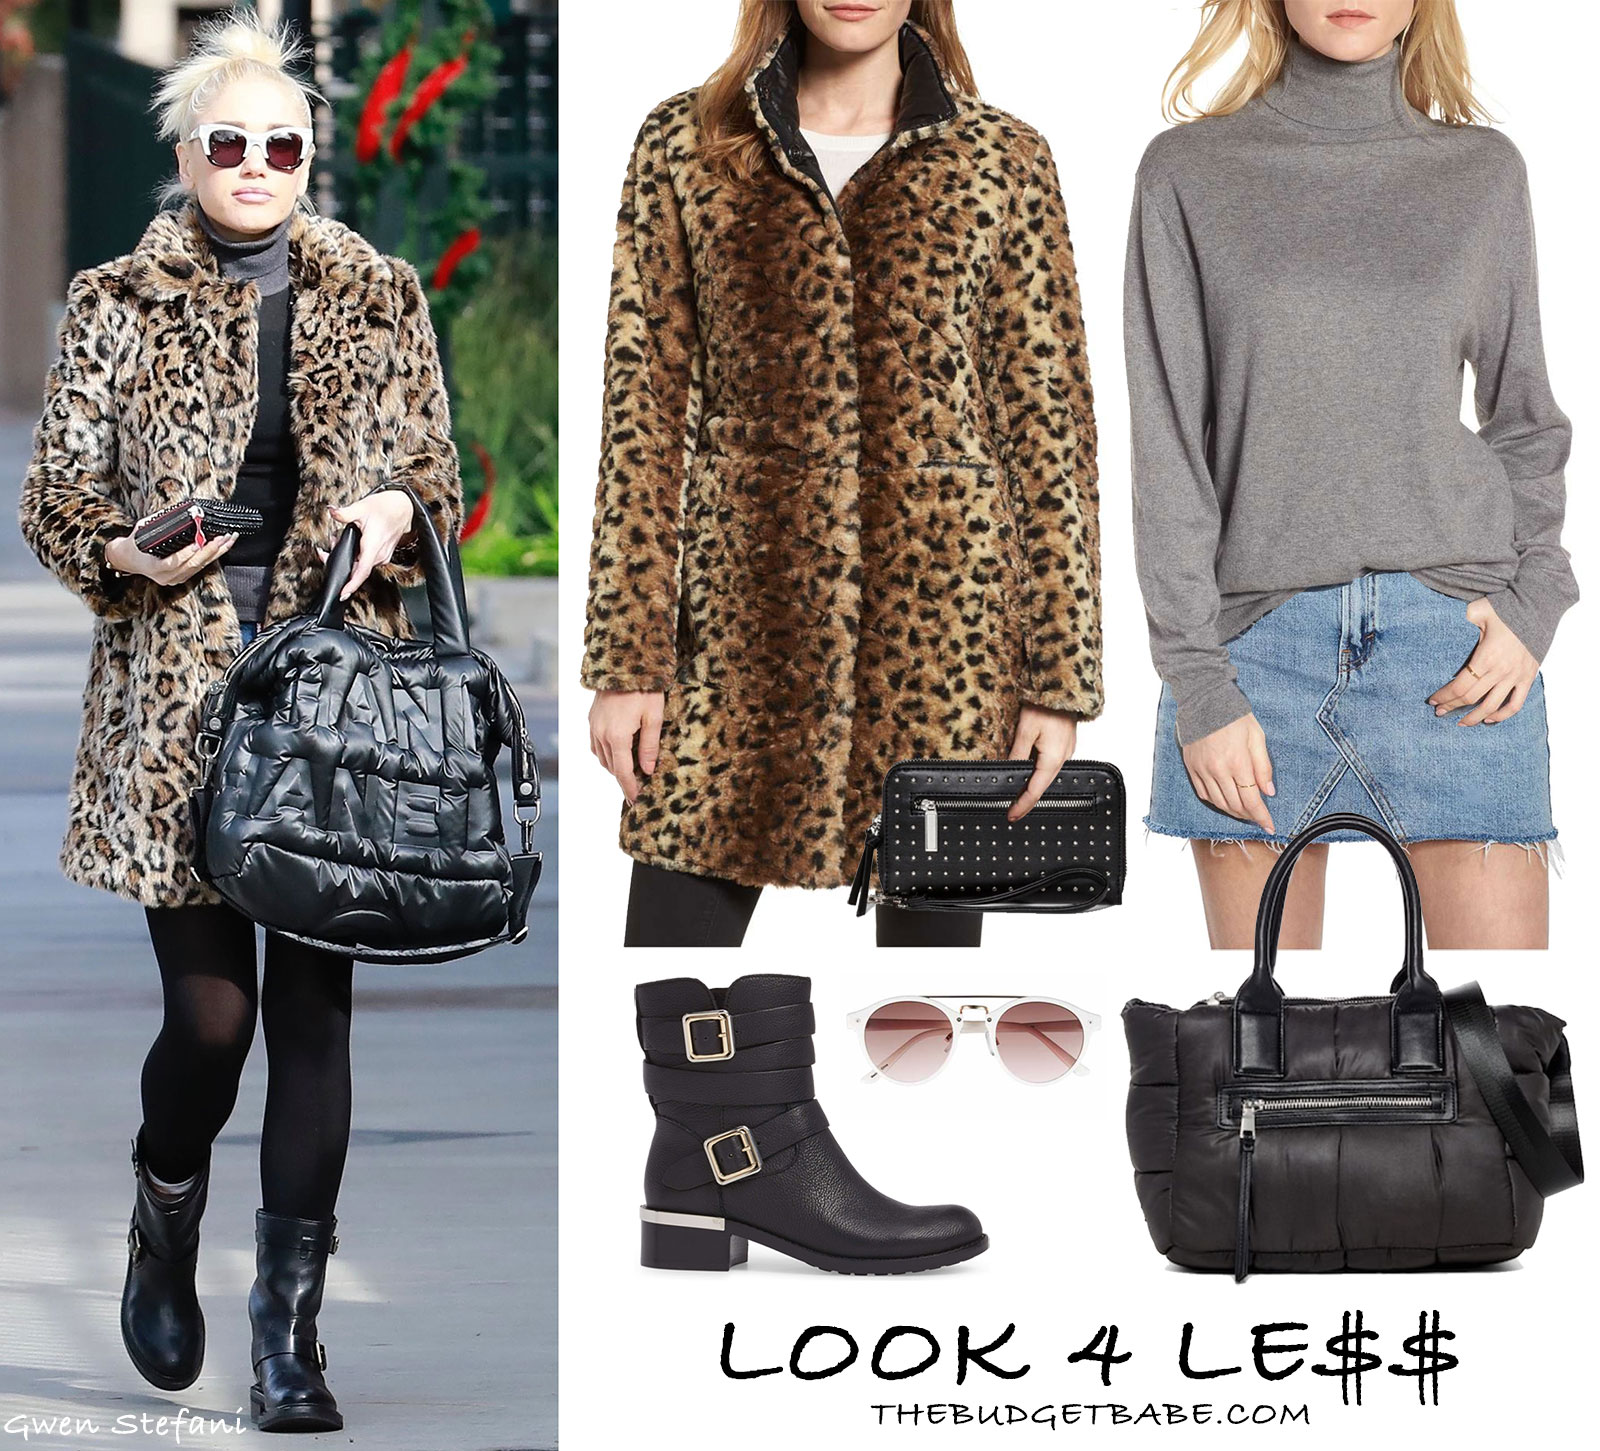 Gwen Stefani wears a leopard Vince Camuto coat with moto boots and a Chanel bag.